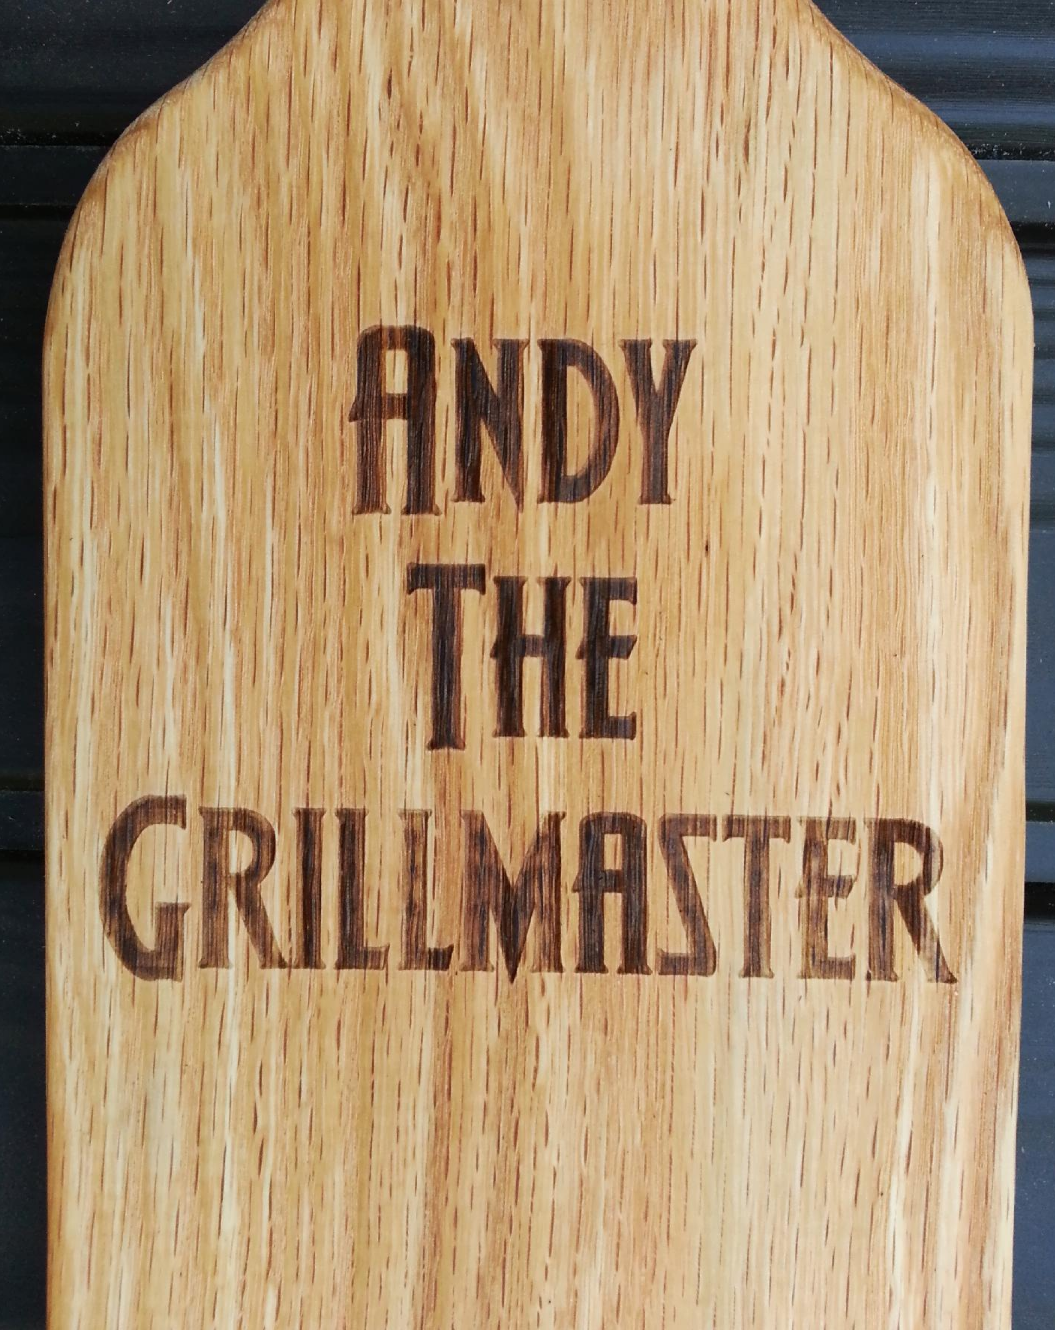 Personalized grillmaster example